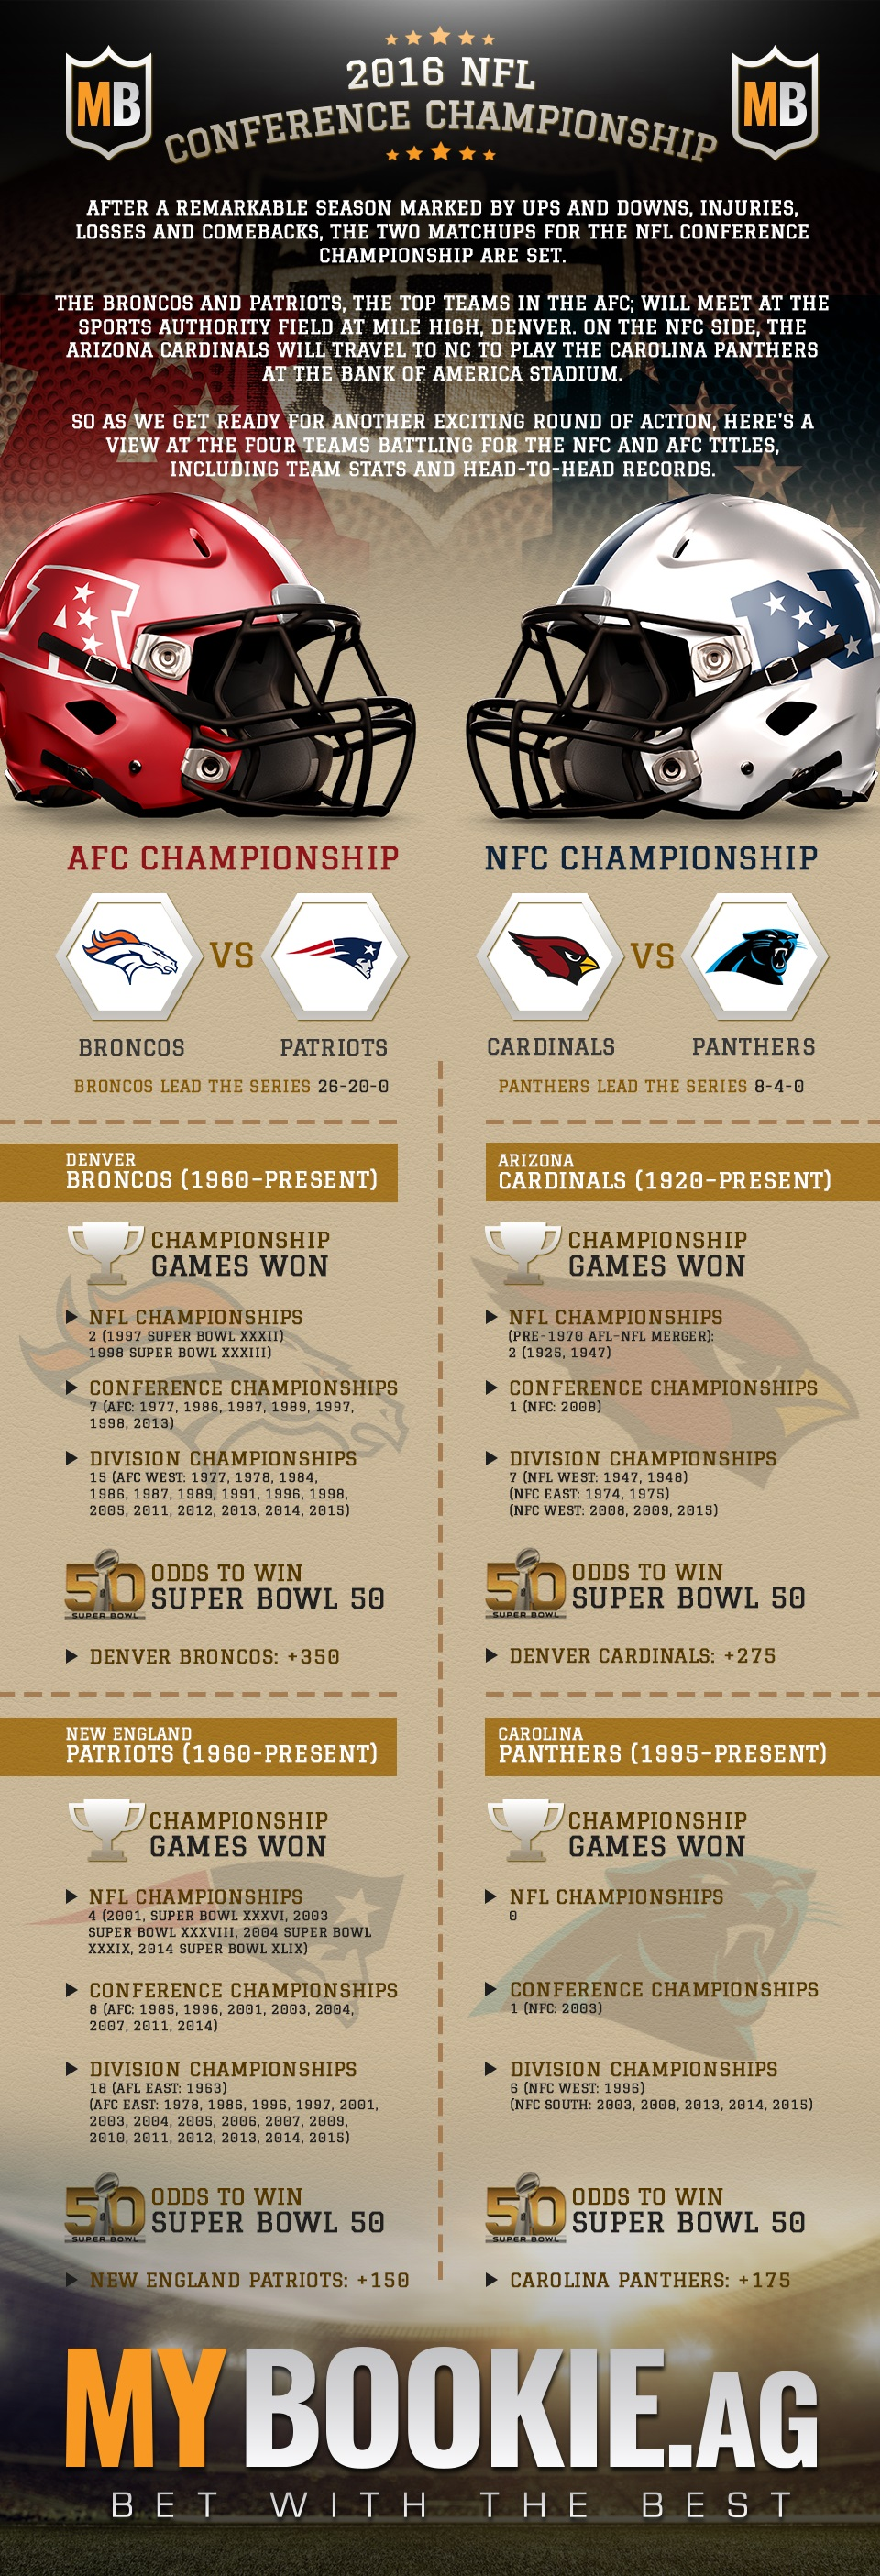 betting spread nfc championship game 2015 stats